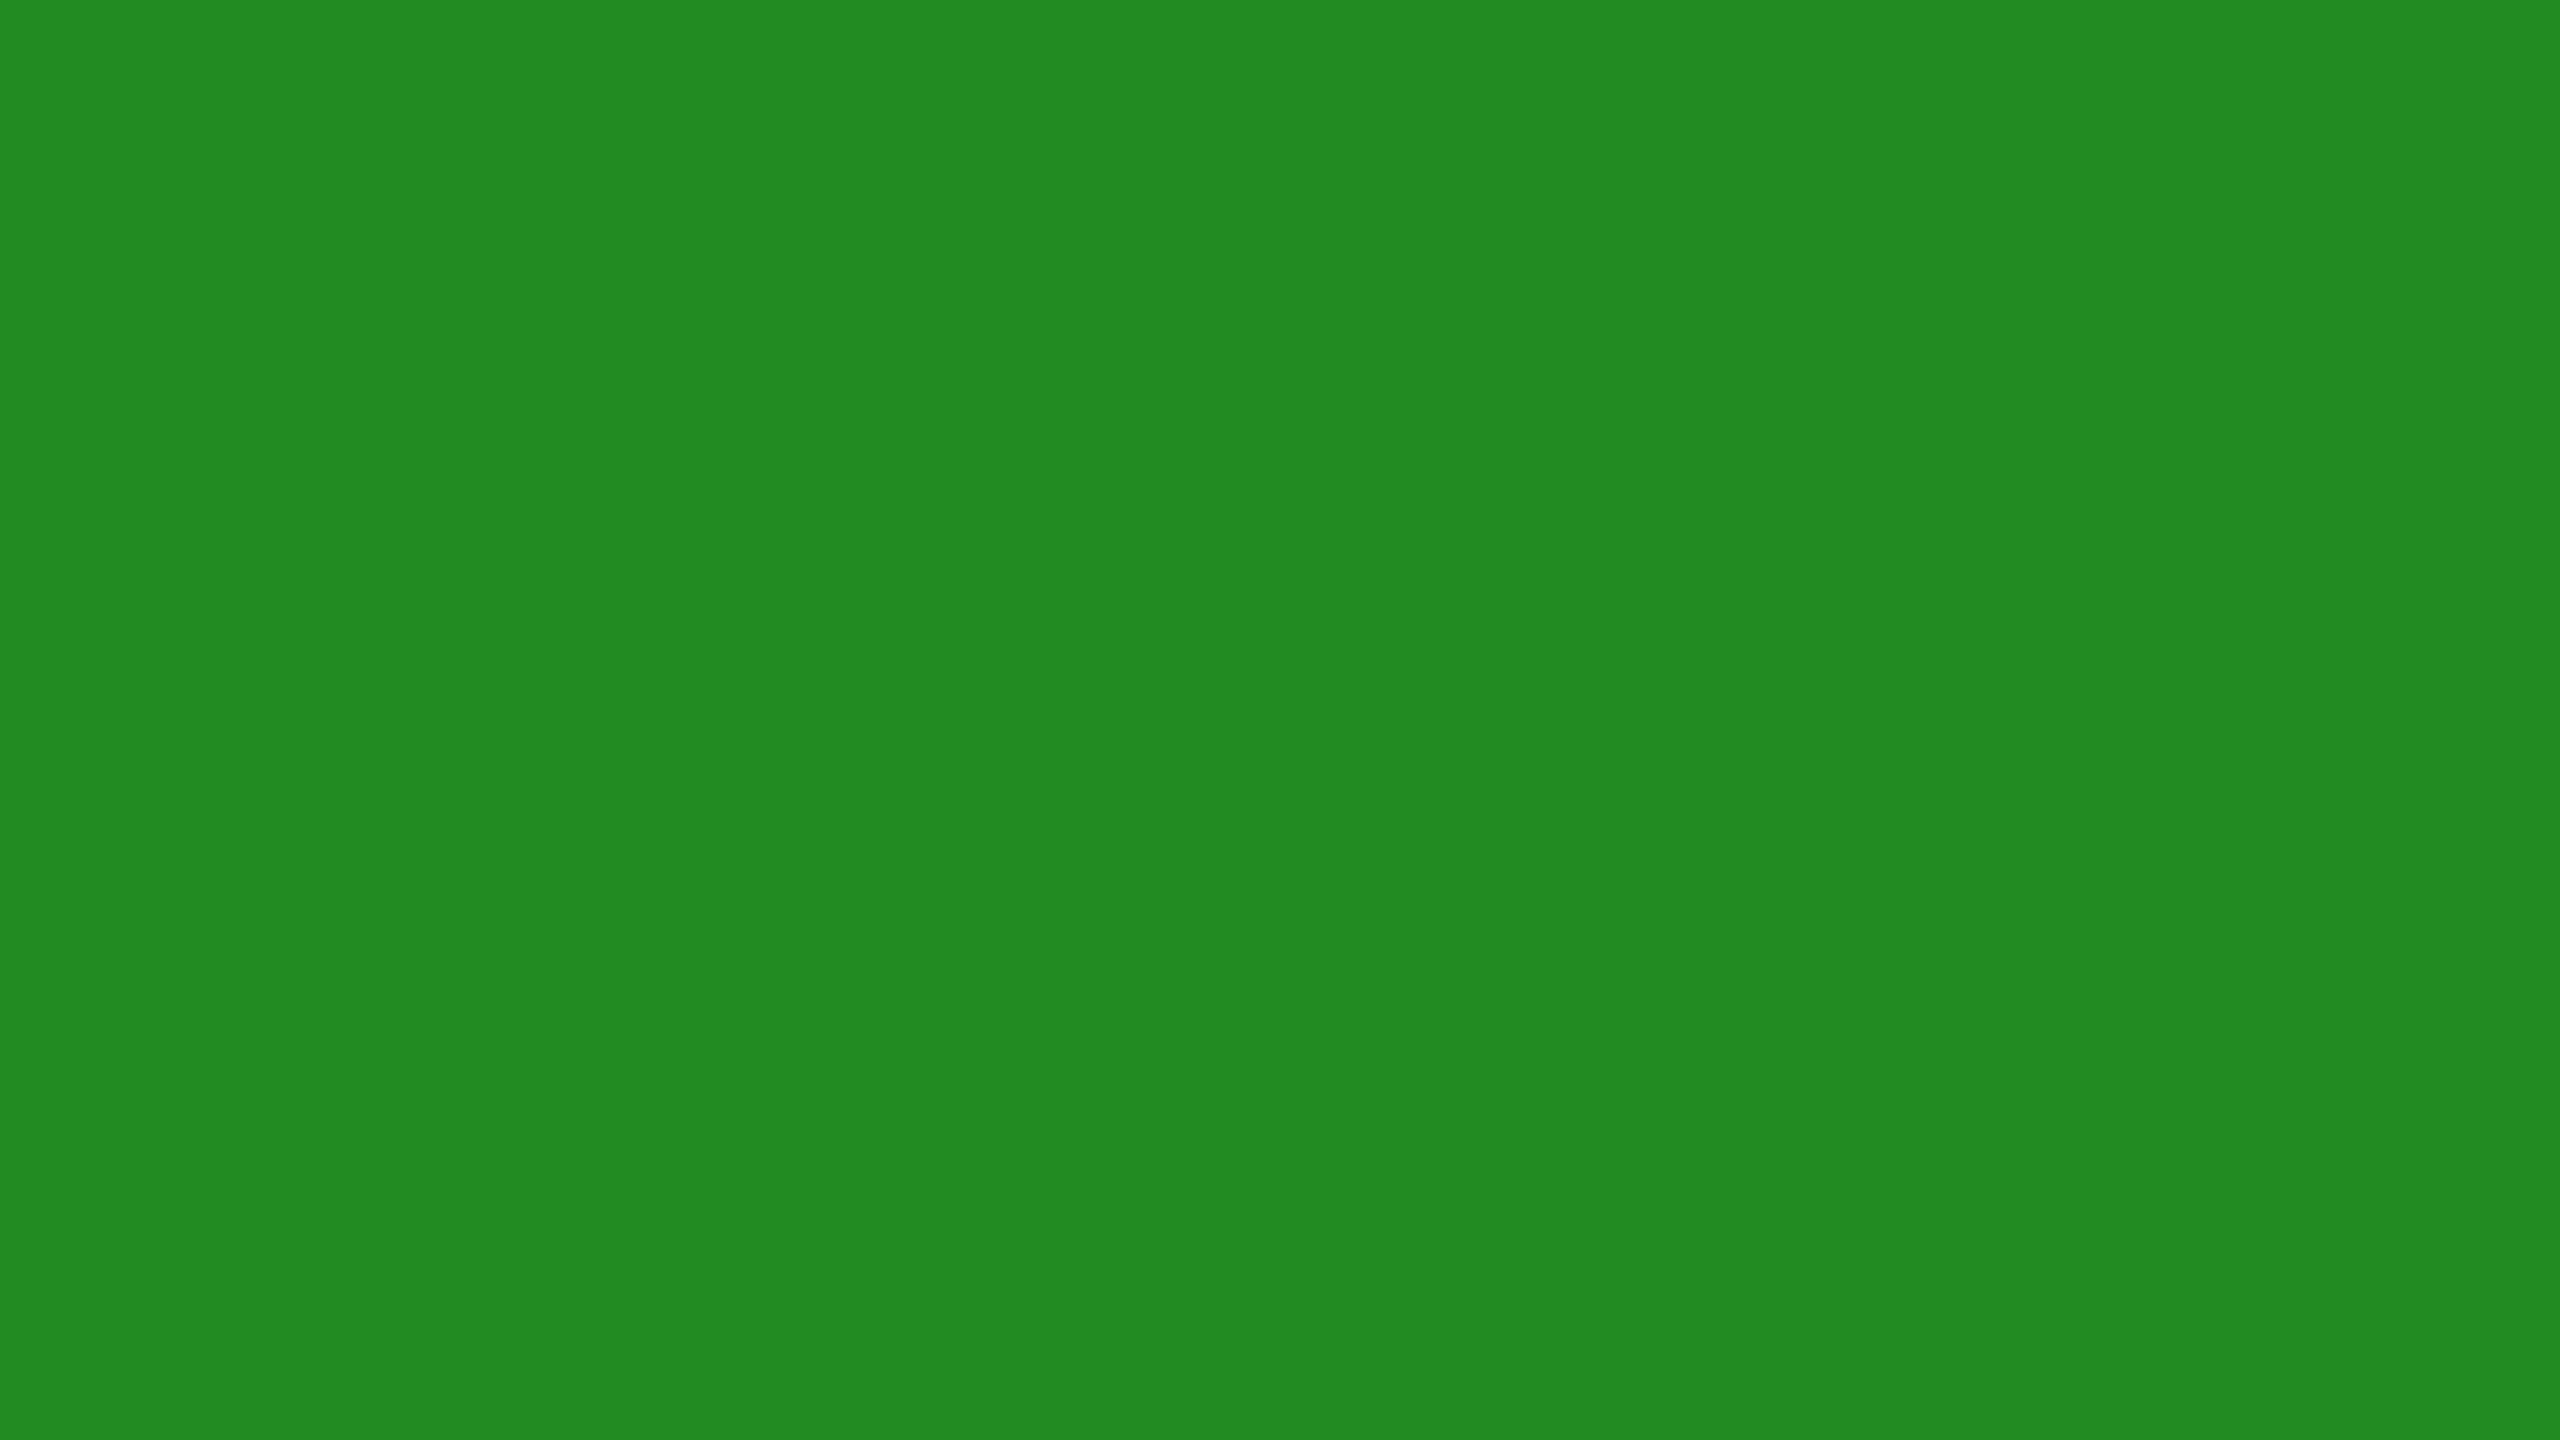 2560x1440 - Solid Green 28